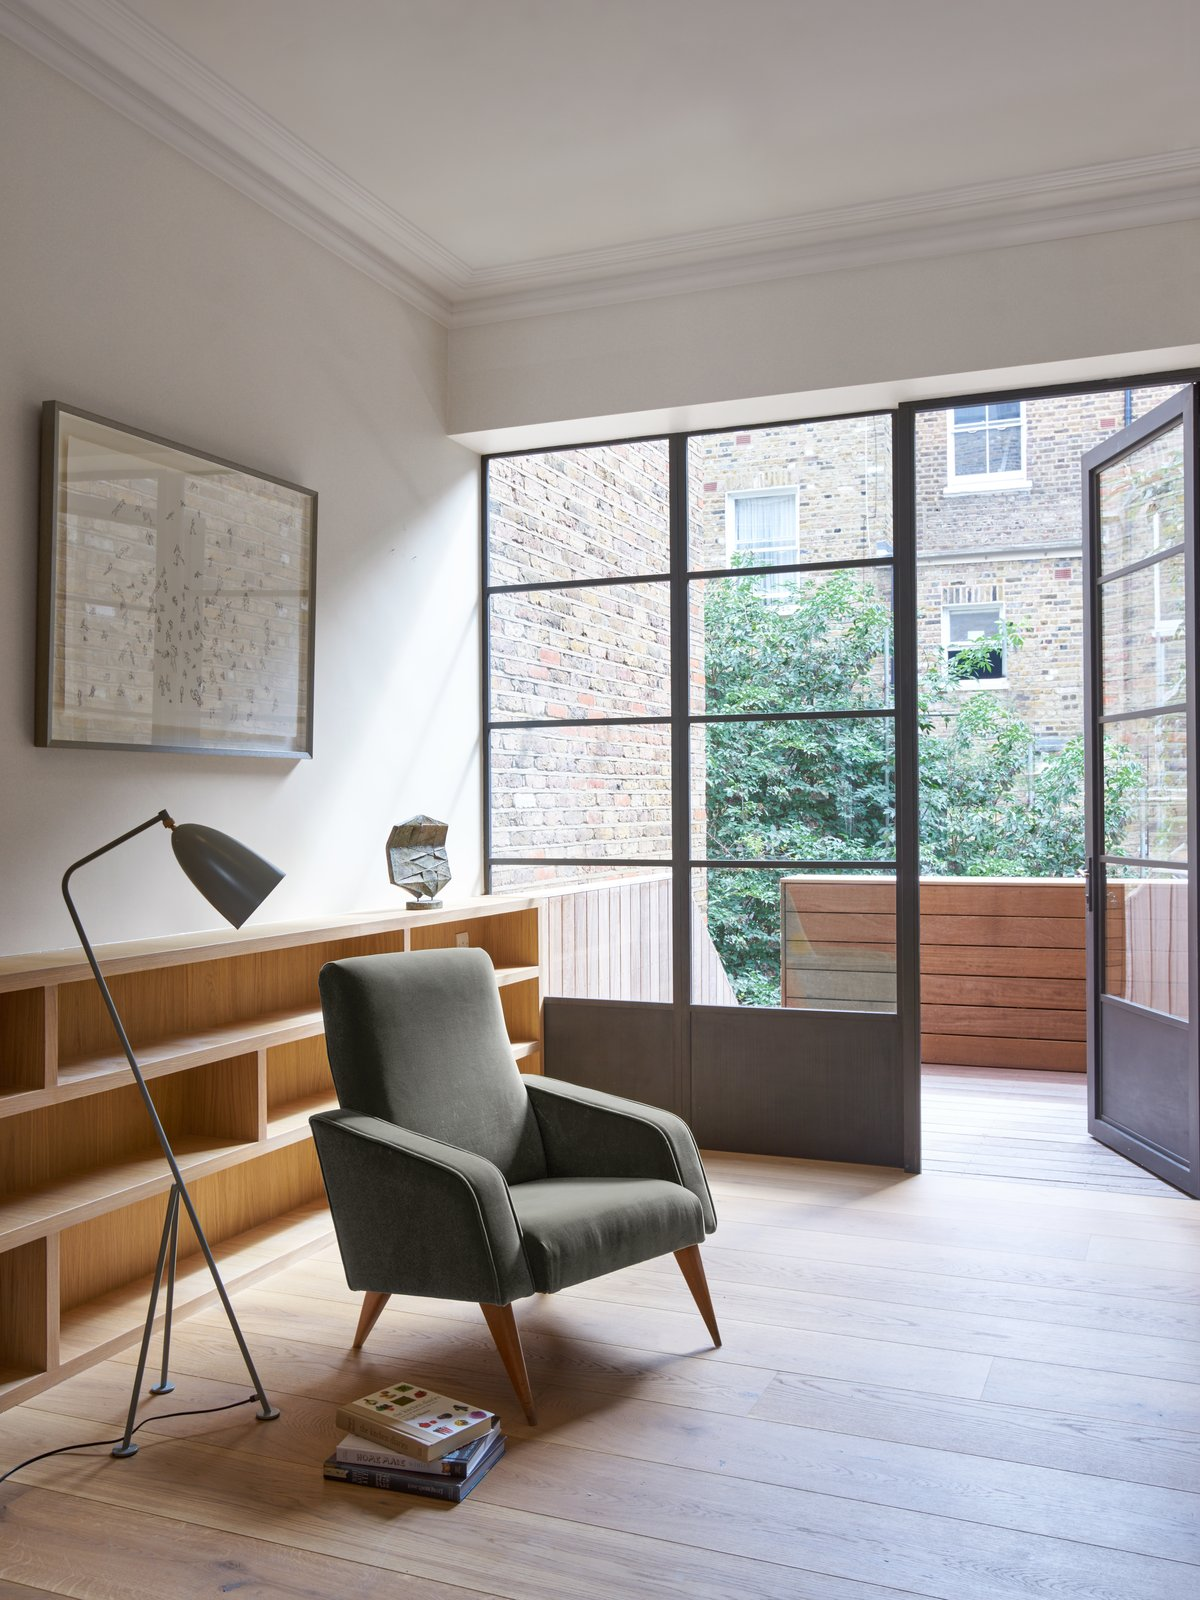 Living Room, Chair, and Floor Lighting  Photo 2 of 10 in A Once-Derelict London House Restored With Modern Elegance